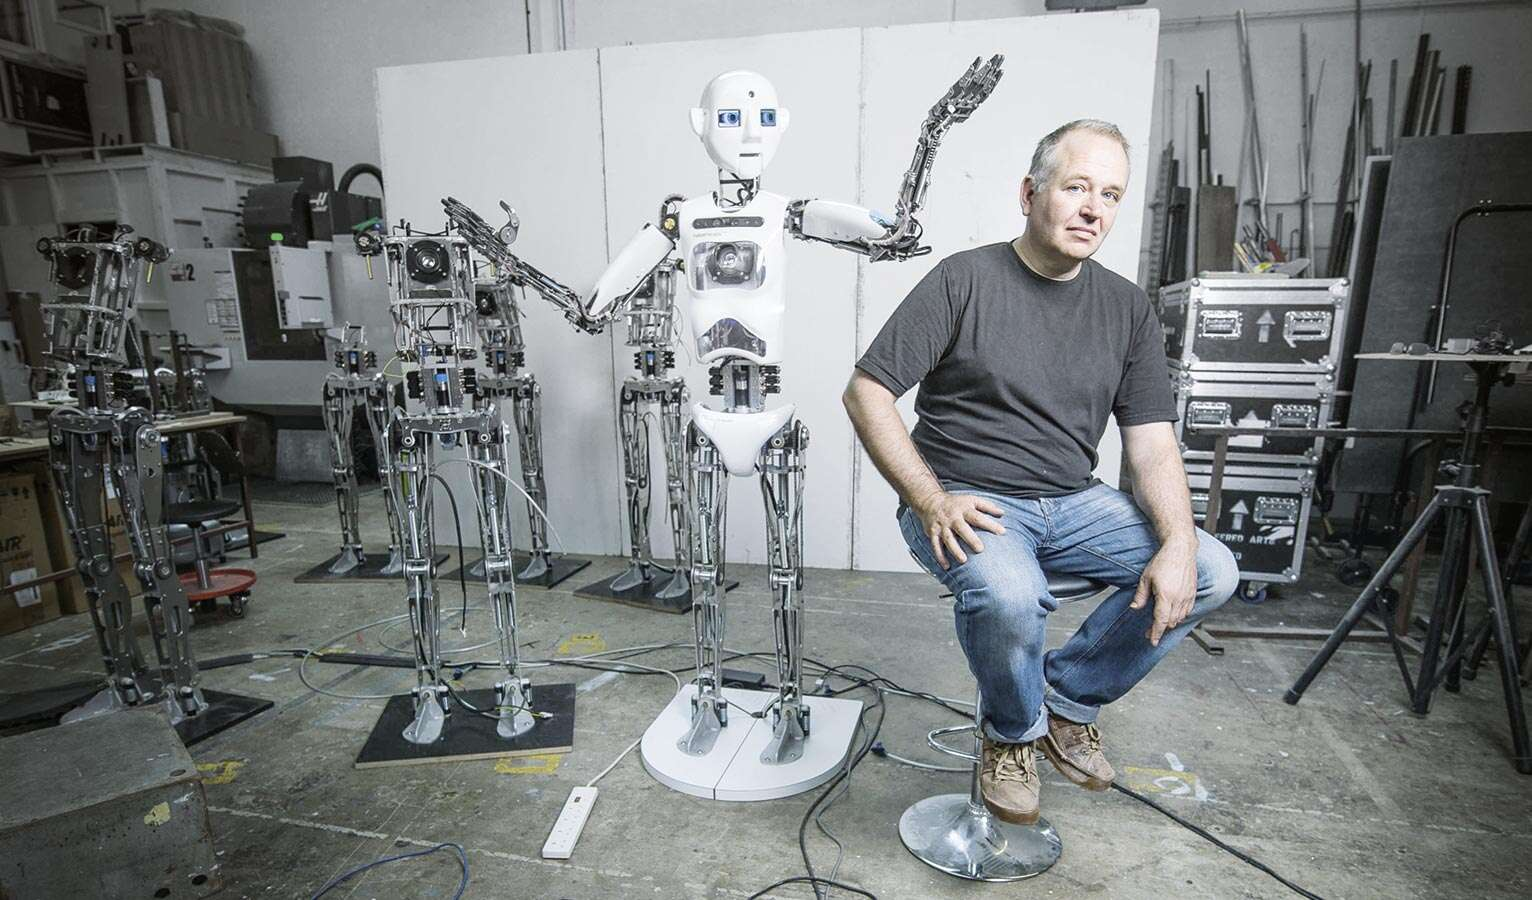 The humanoid robot, RoboThespian, works with pneumatic muscles developed by Festo.